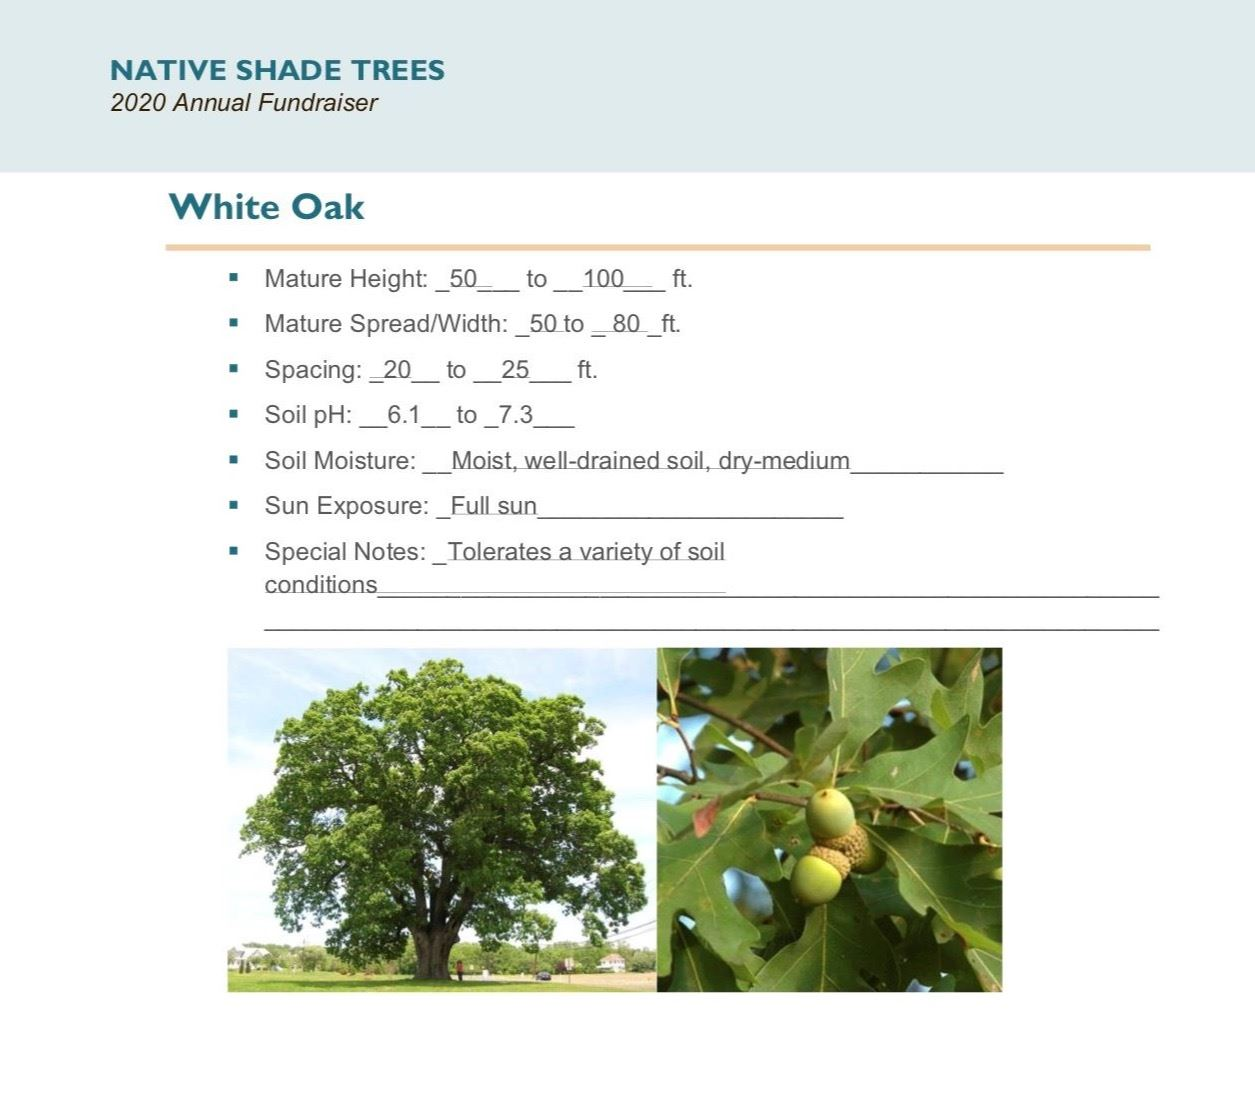 Brochure Template Draft_Native_Shade_Trees2.0(USE)pg6